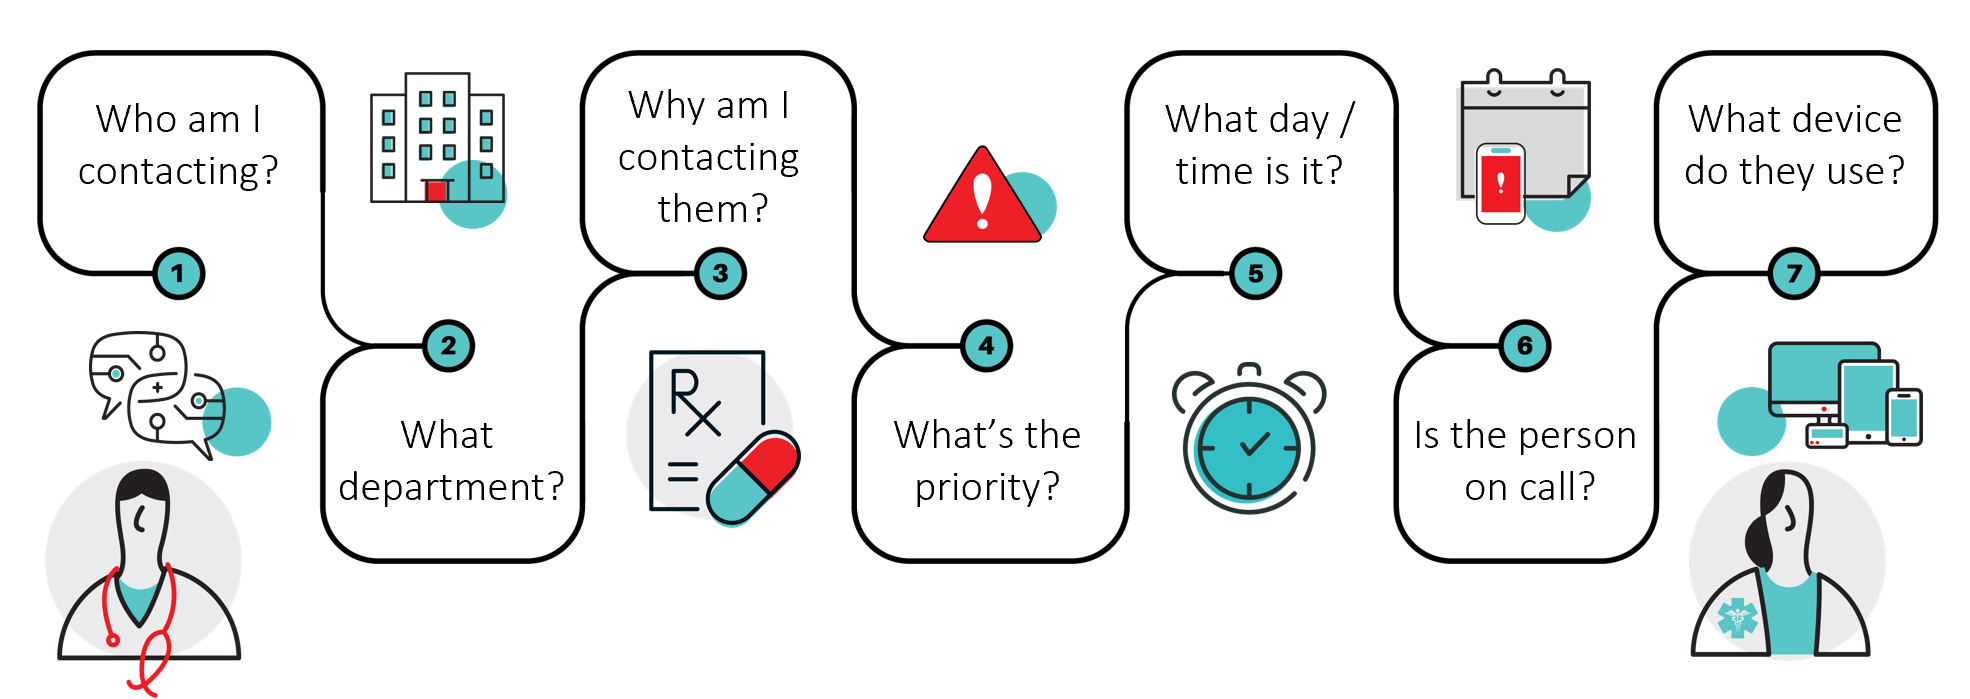 Secure texting in healthcare diagram